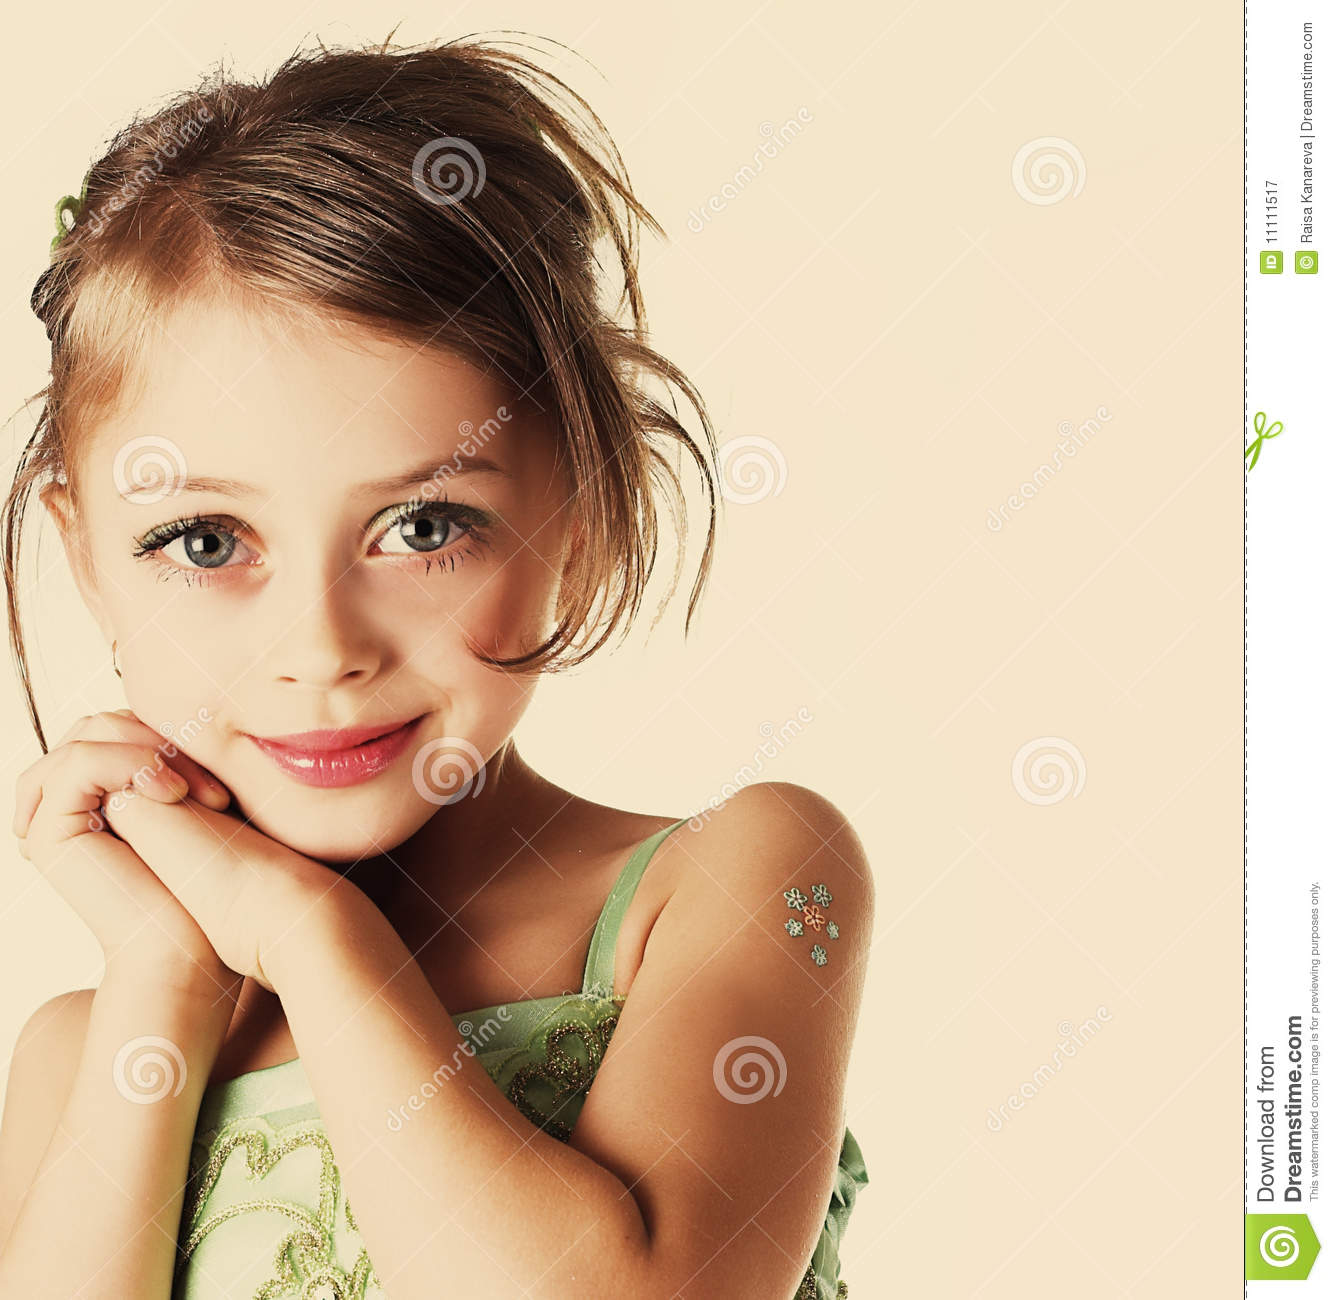 Happy Little Girl Royalty Free Stock Photography - Image ...